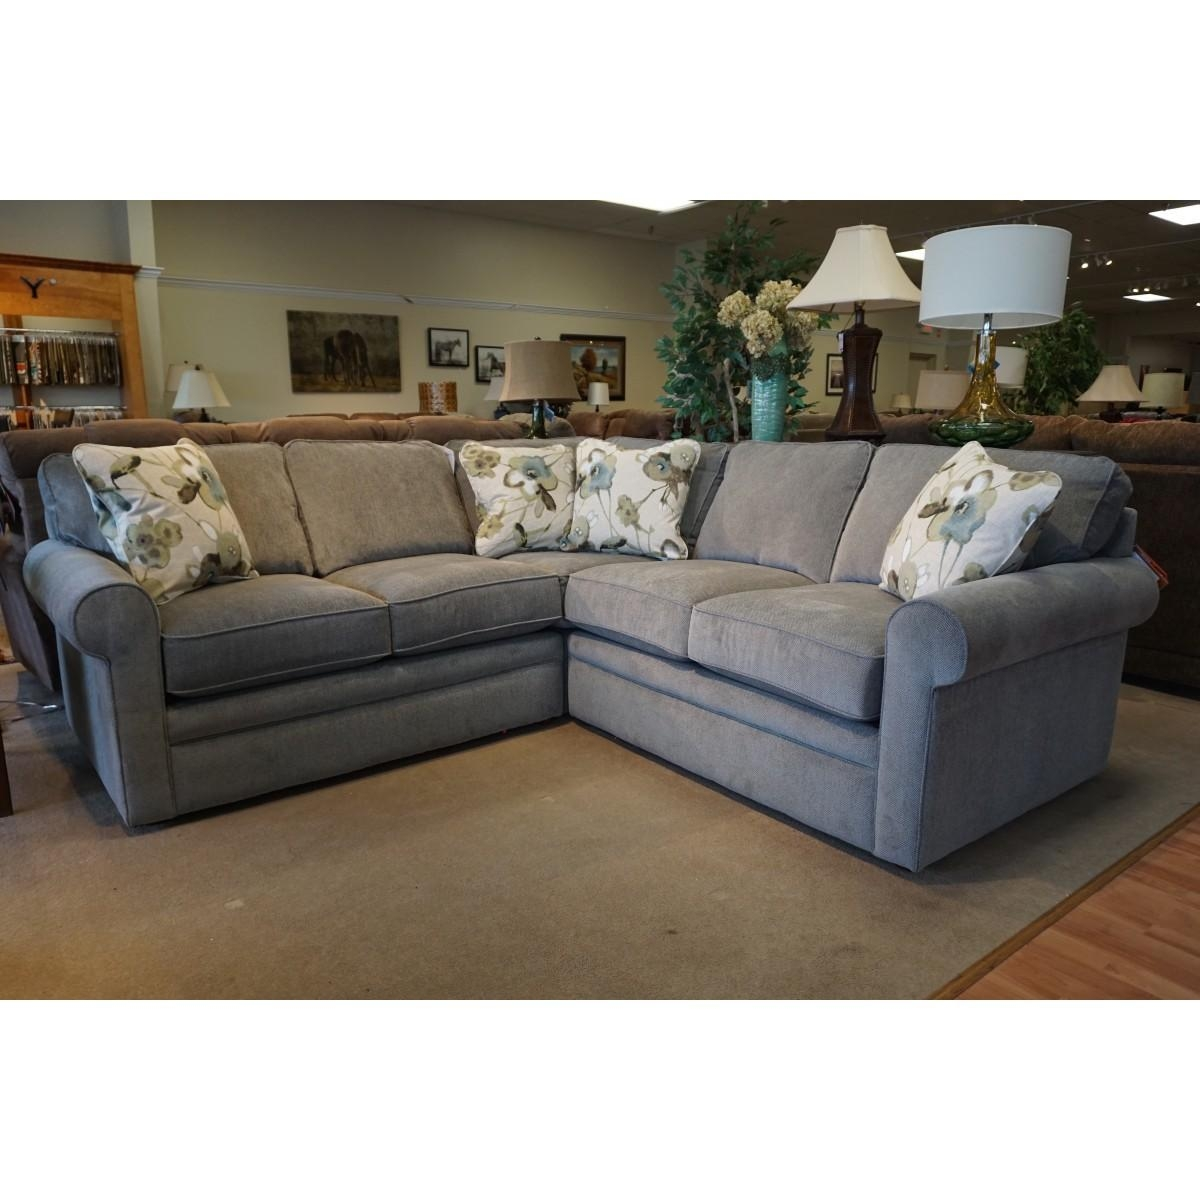 Z Boy Collins Sectional With Regard To Lazy Boy Sectional (View 3 of 20)